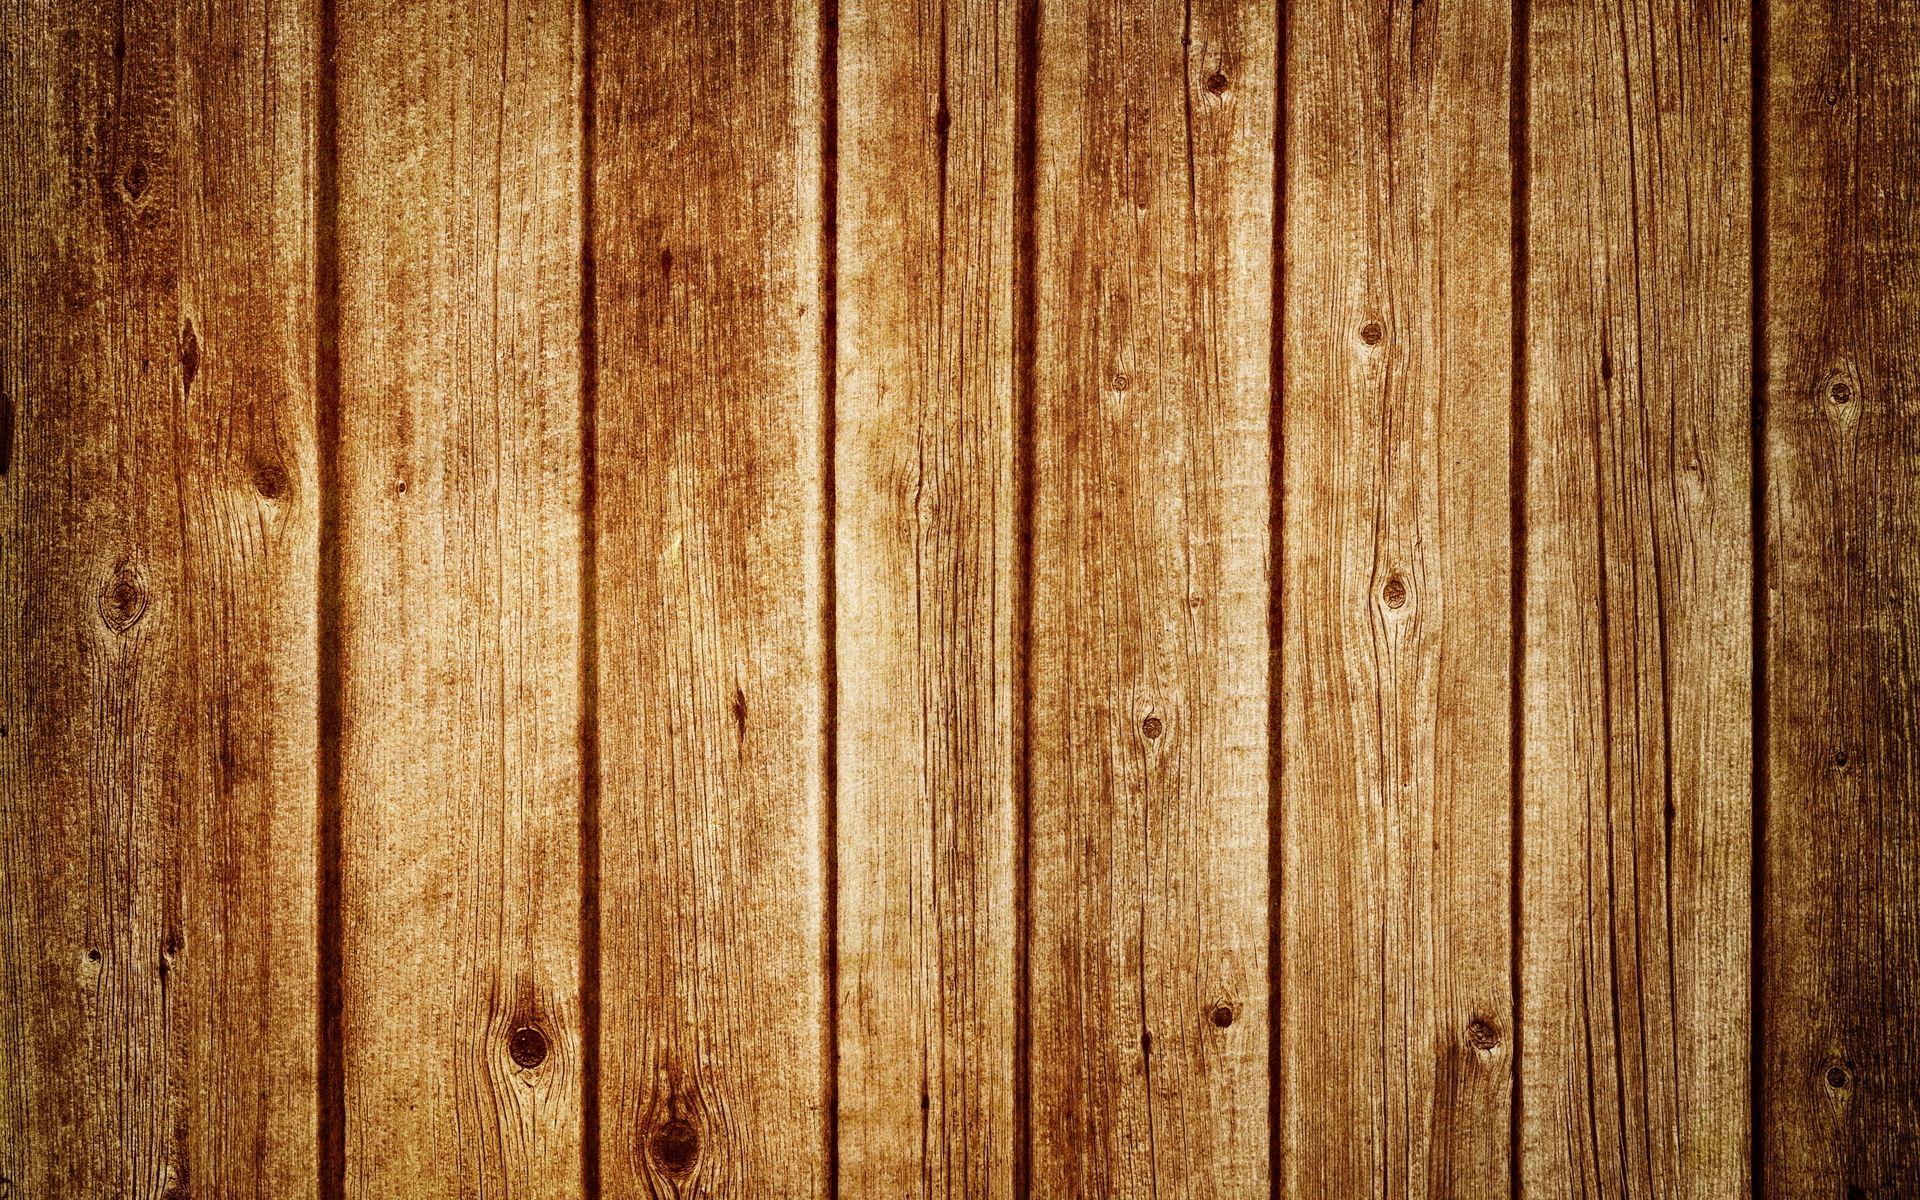 47 Wood Wallpaper For Walls On Wallpapersafari Images, Photos, Reviews